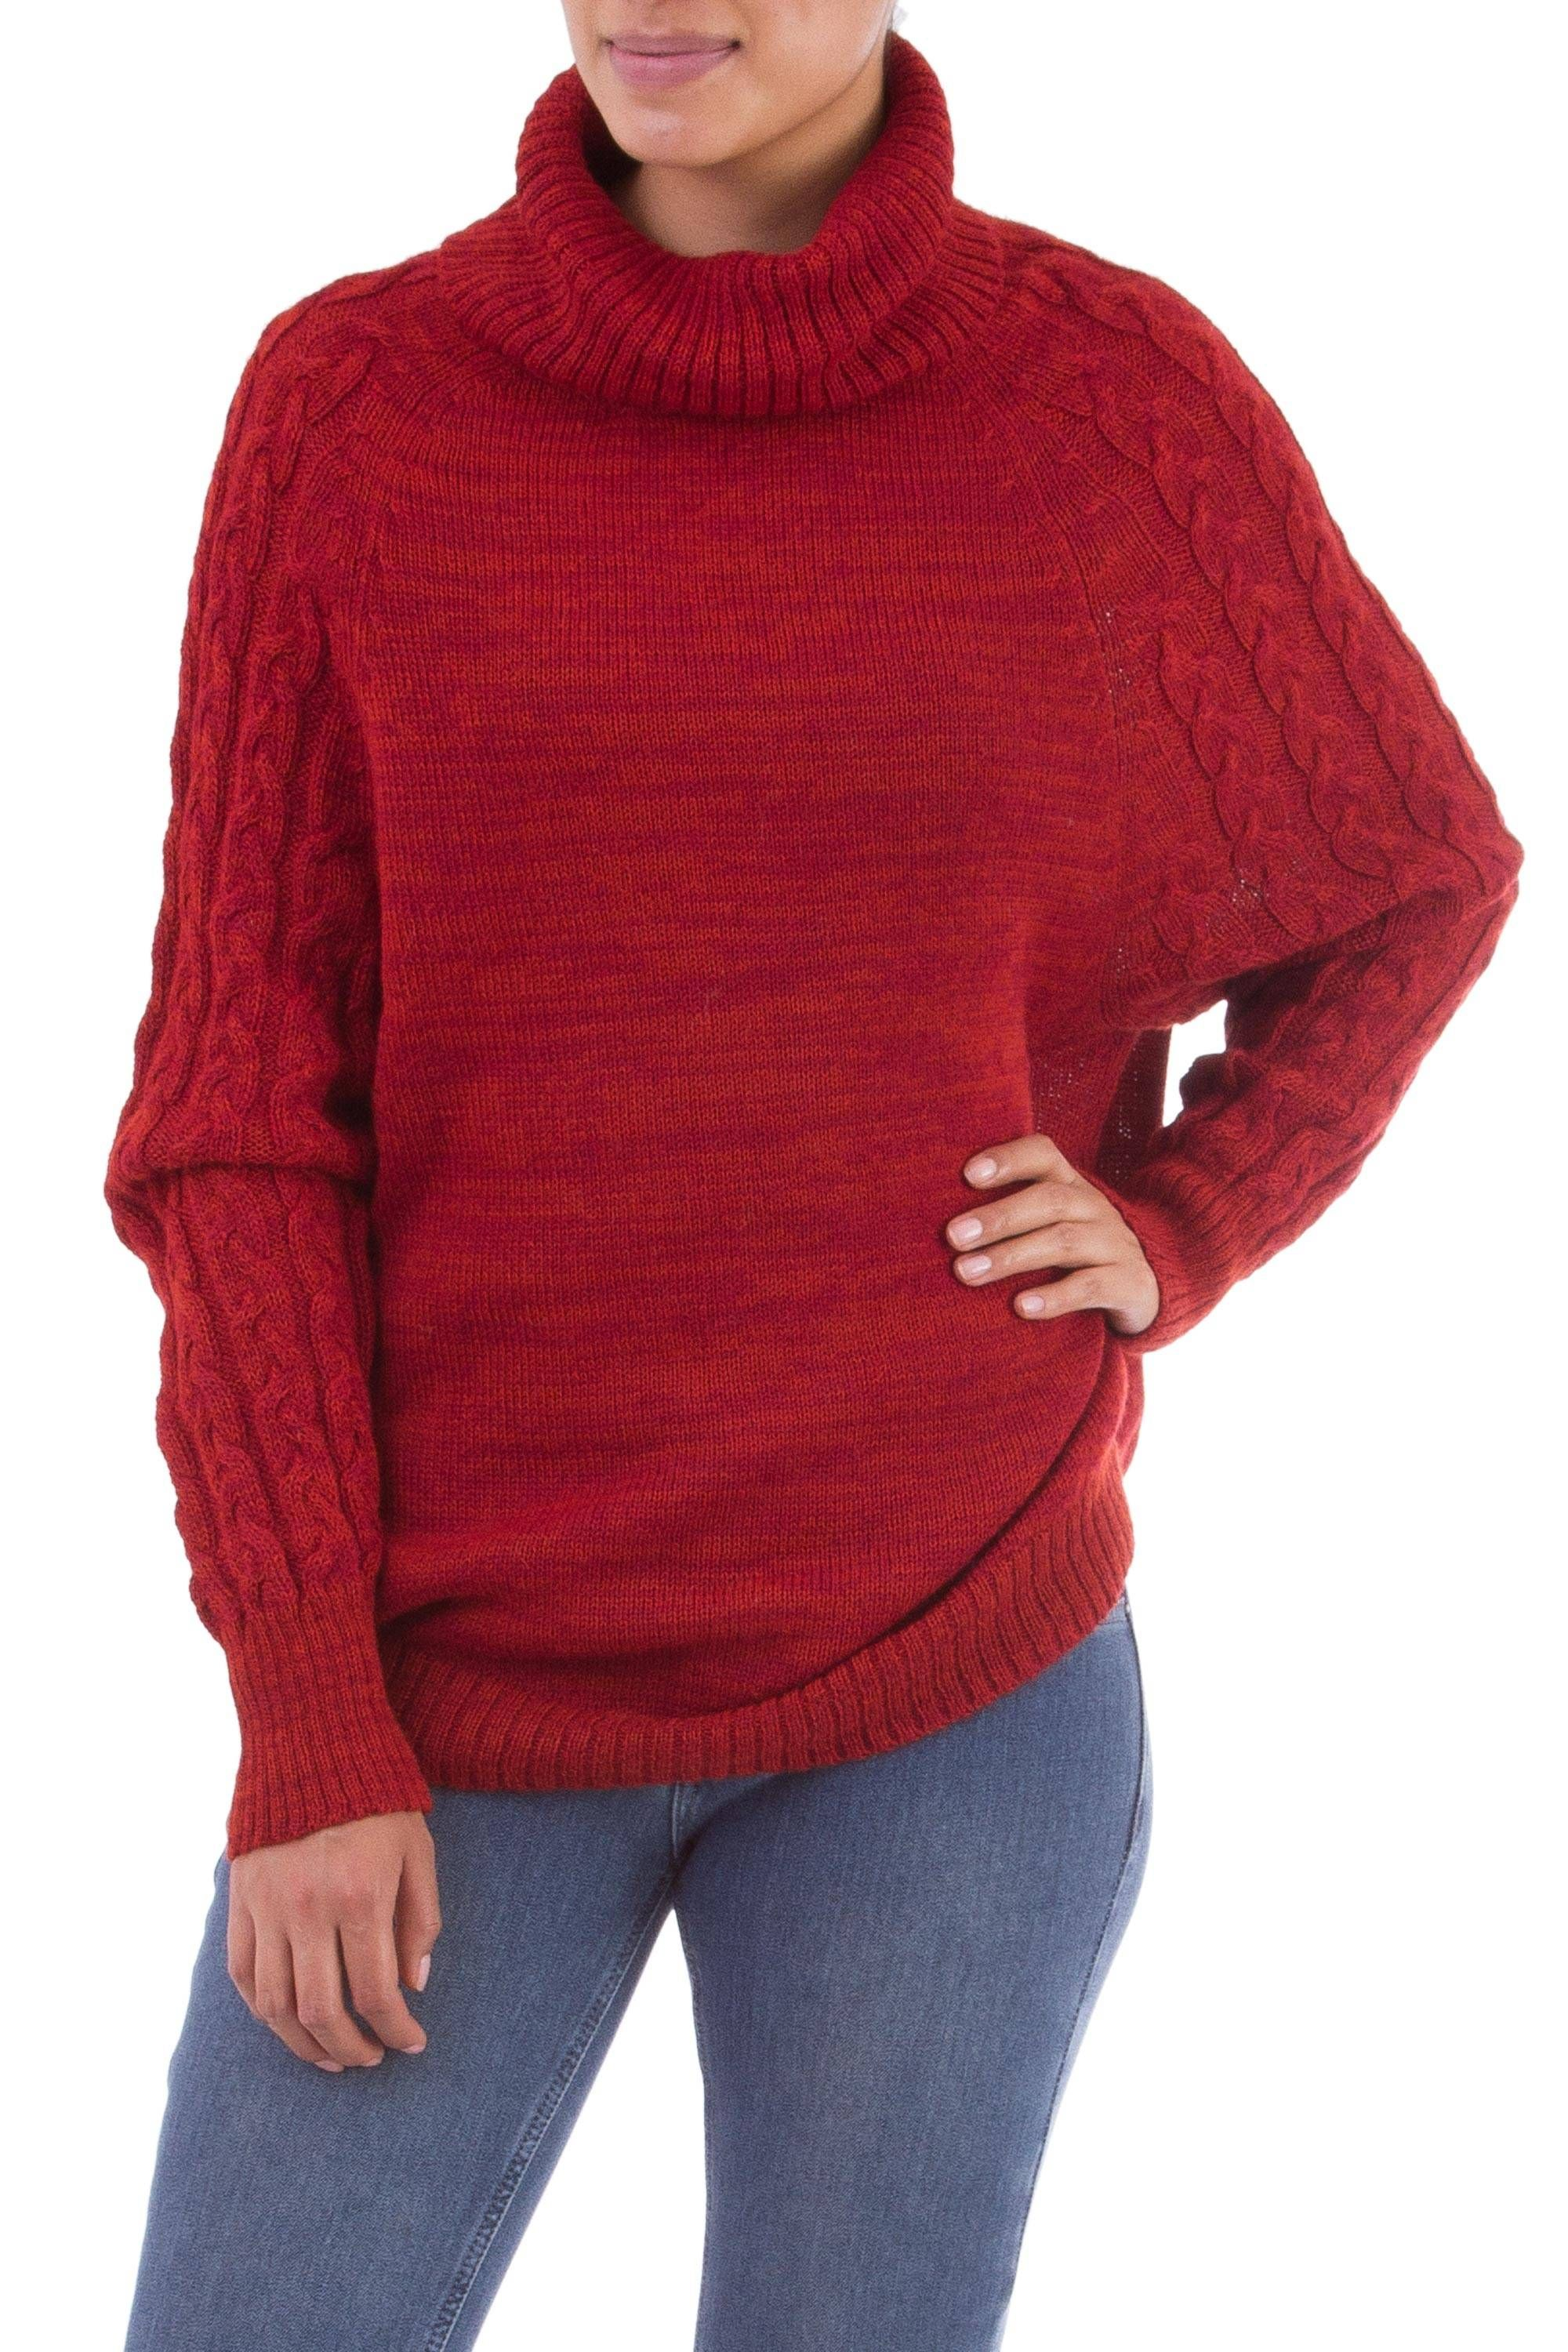 Unicef Market Knit Red Baby Alpaca Turtleneck Sweater From Peru Holiday Warmth In Red Alpaca Sweater Sweaters Baby Alpaca